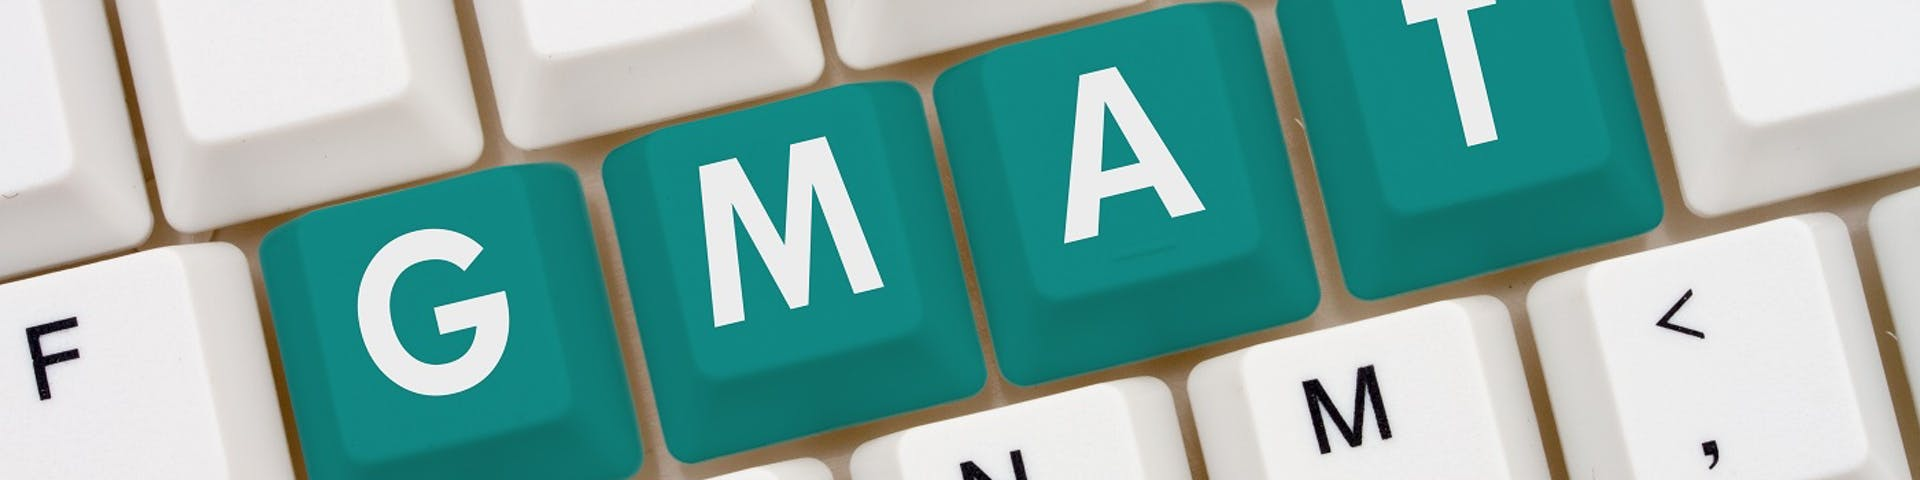 GMAT vs  GRE: Which Test Helps You the Most with Your